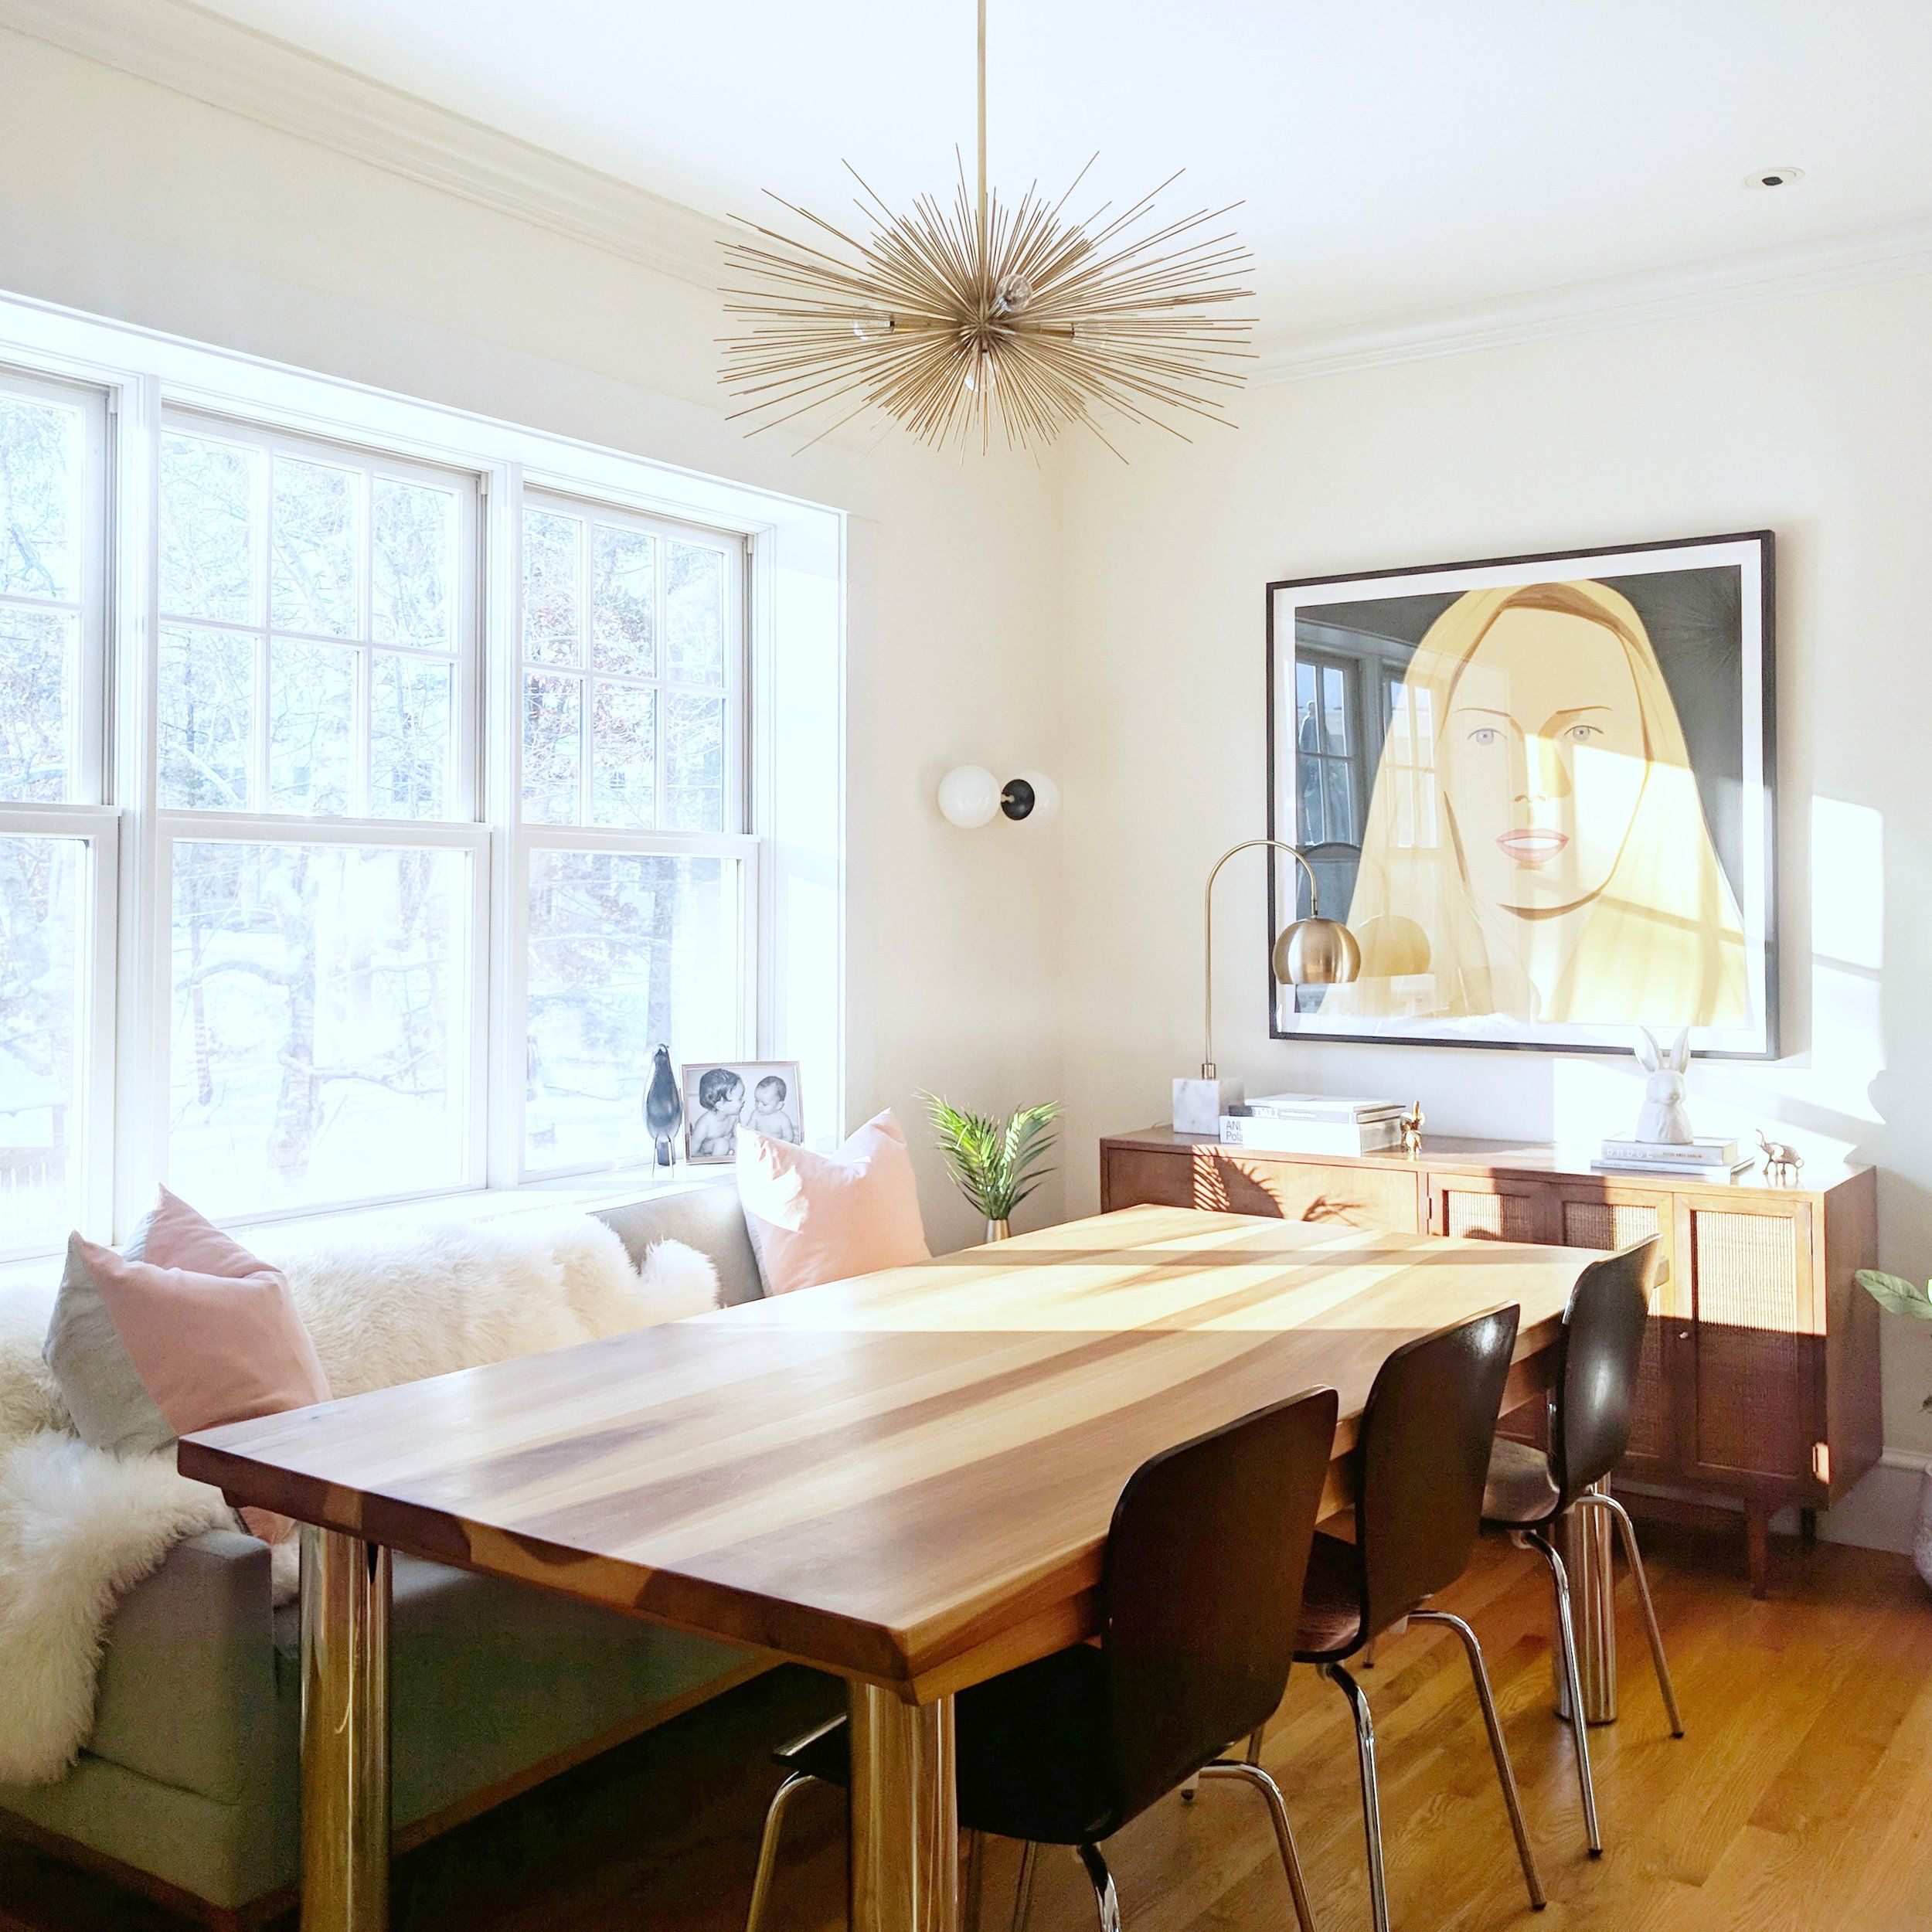 MCM dining with SOFA -- unusual! | Funky home decor, Home ...